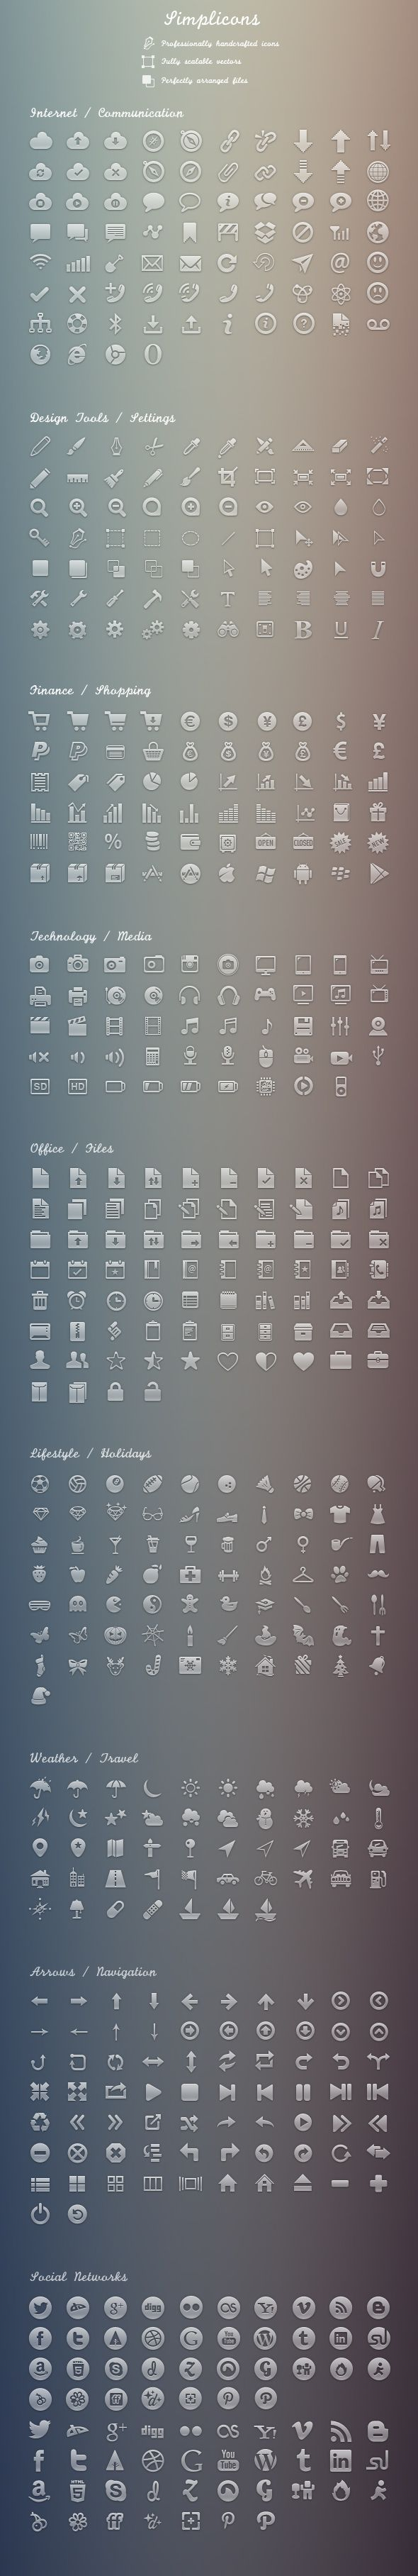 67 Best Moodboard2 Images On Pinterest User Interface Design Tools For A Diy Car Wiring Job That You39d Need Any Other 1492 Icons Glyphs Behance